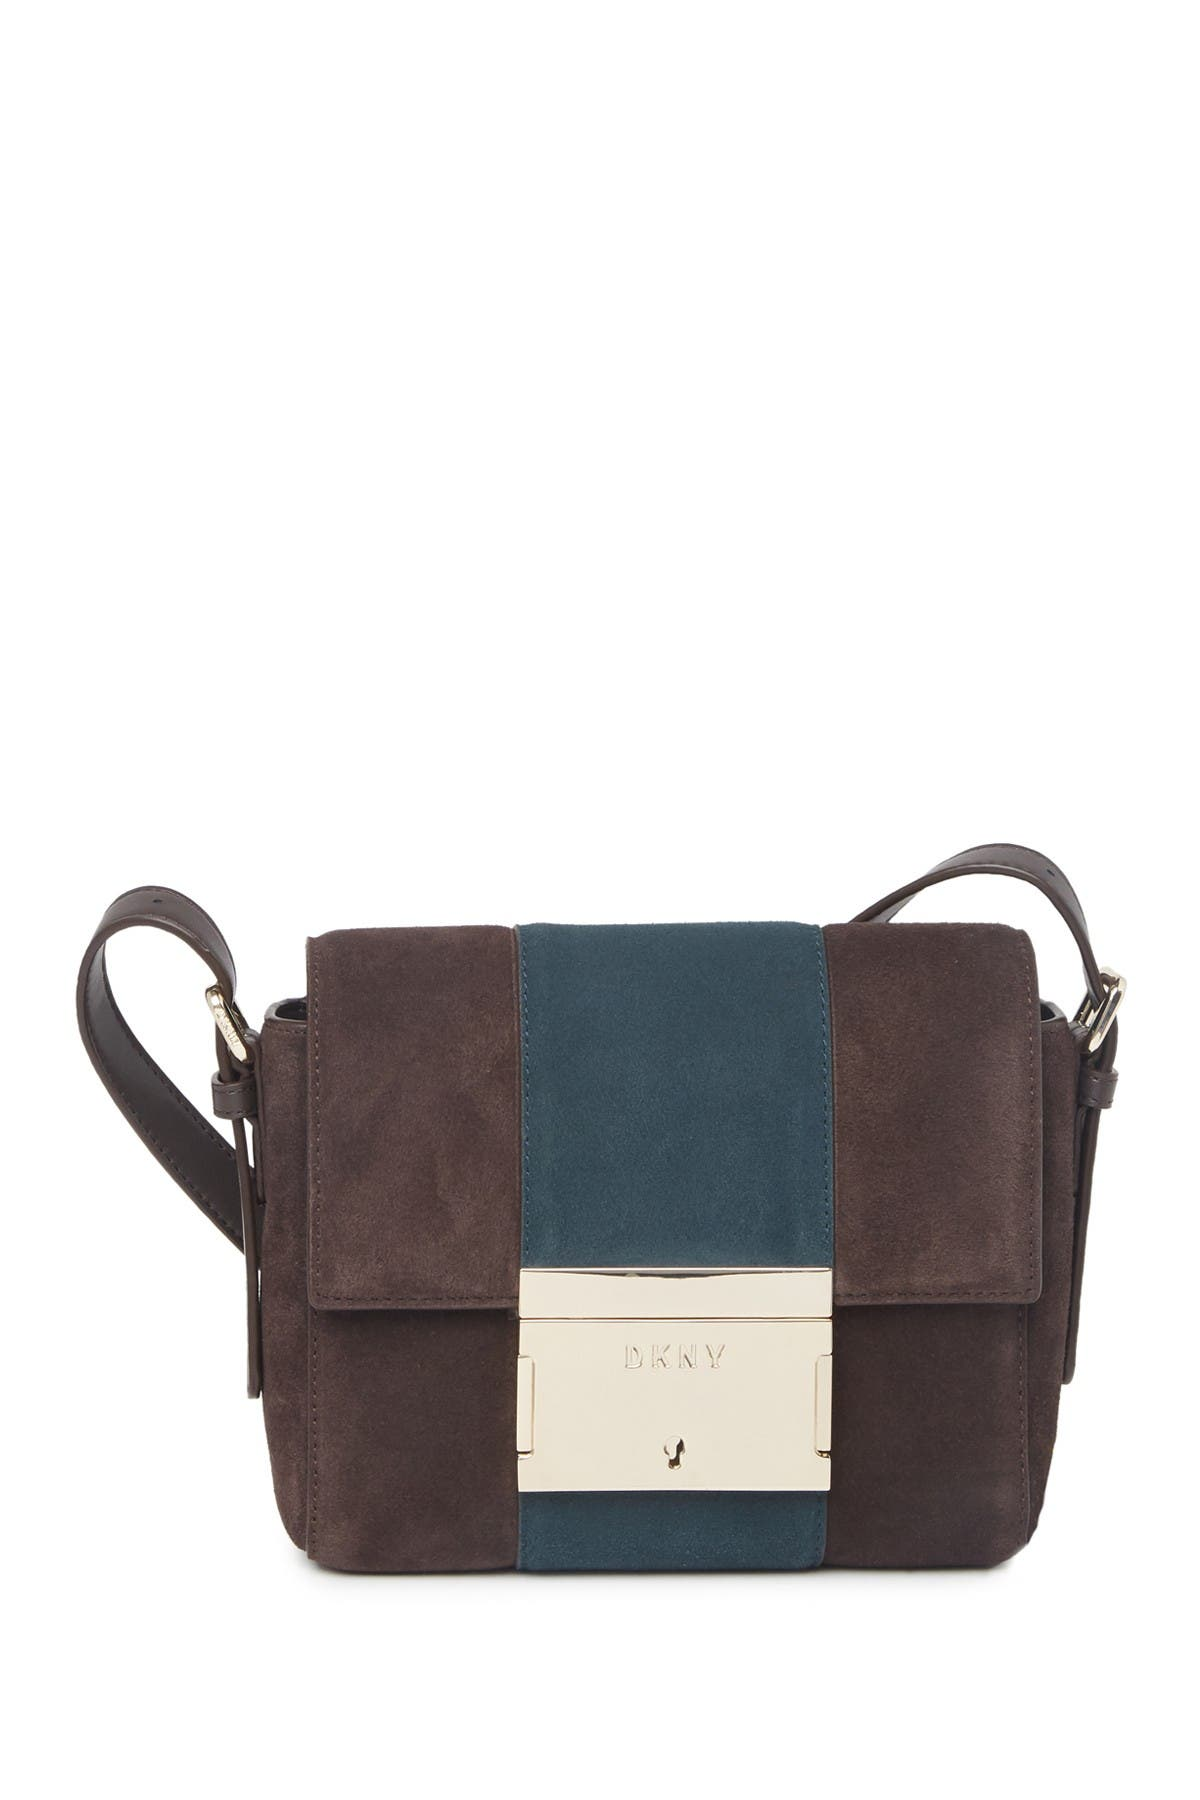 Image of DKNY Adam Suede Flap Crossbody Bag